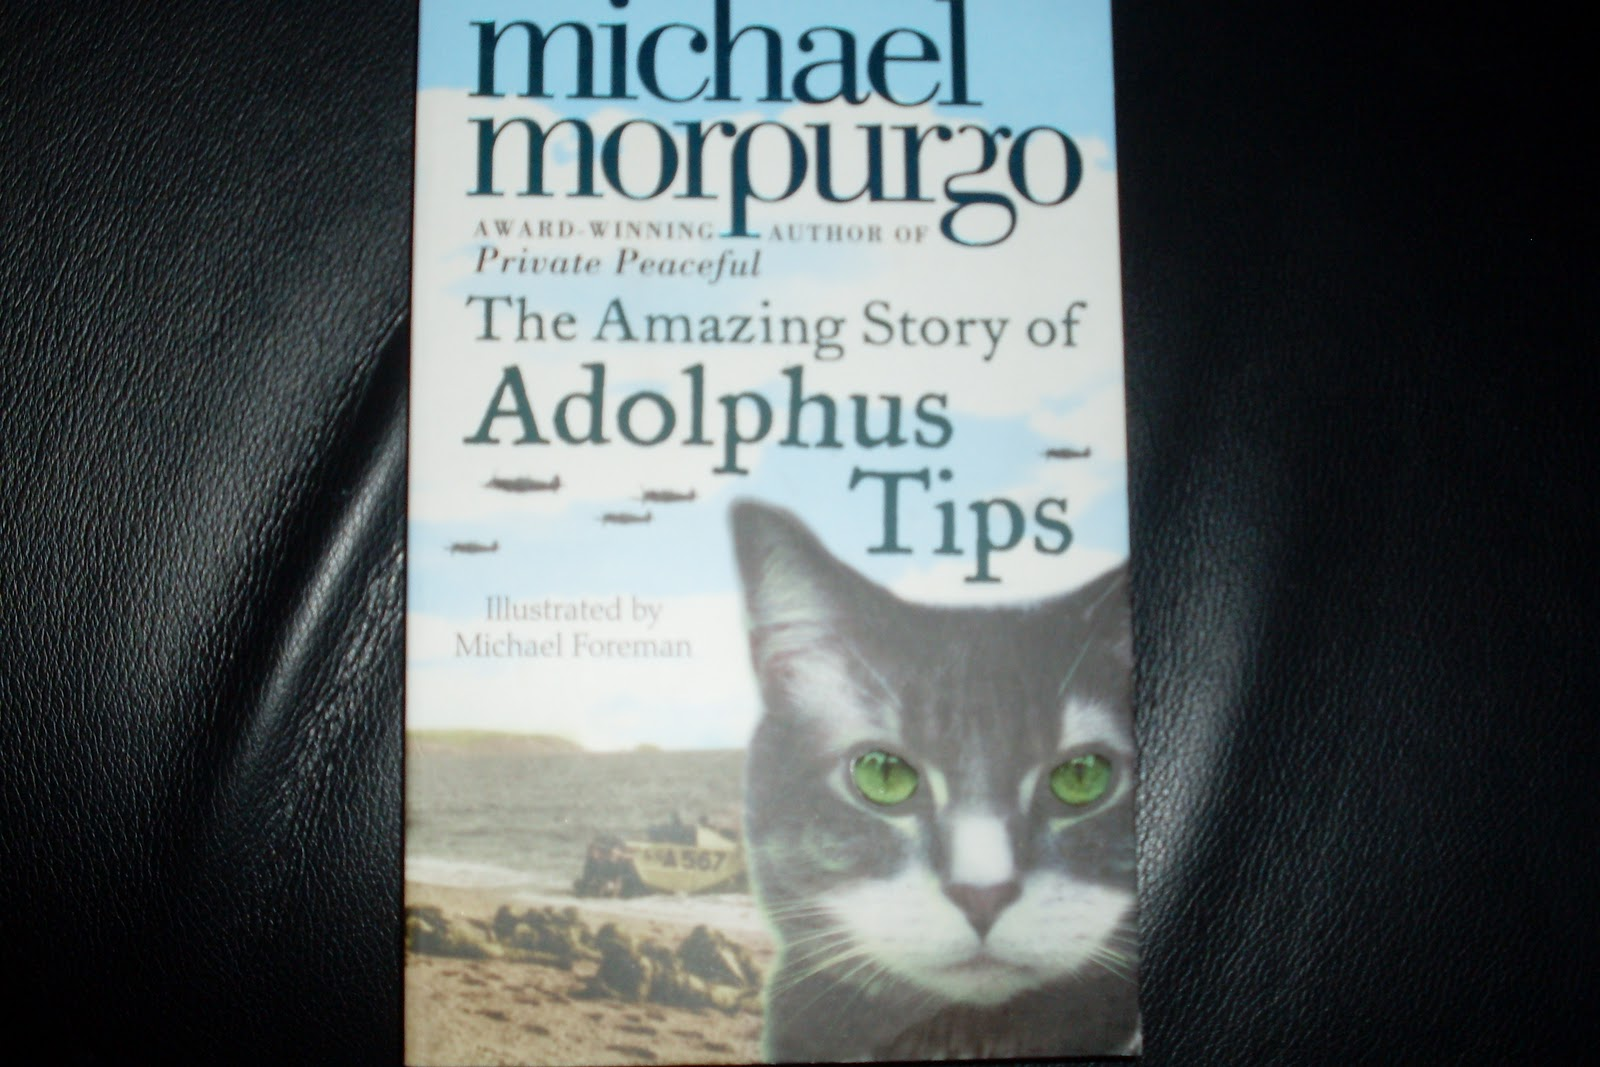 adolphus tips book report The amazing story of adolphus tips keep out danger it's 1943 battles are raging across europe now the shadow of war has come to lily's seaside village in devon  when i started this book,i thought it would be boring, but then it got better and better this is the one of the best books read it 3 october 2016 minecraft2006.